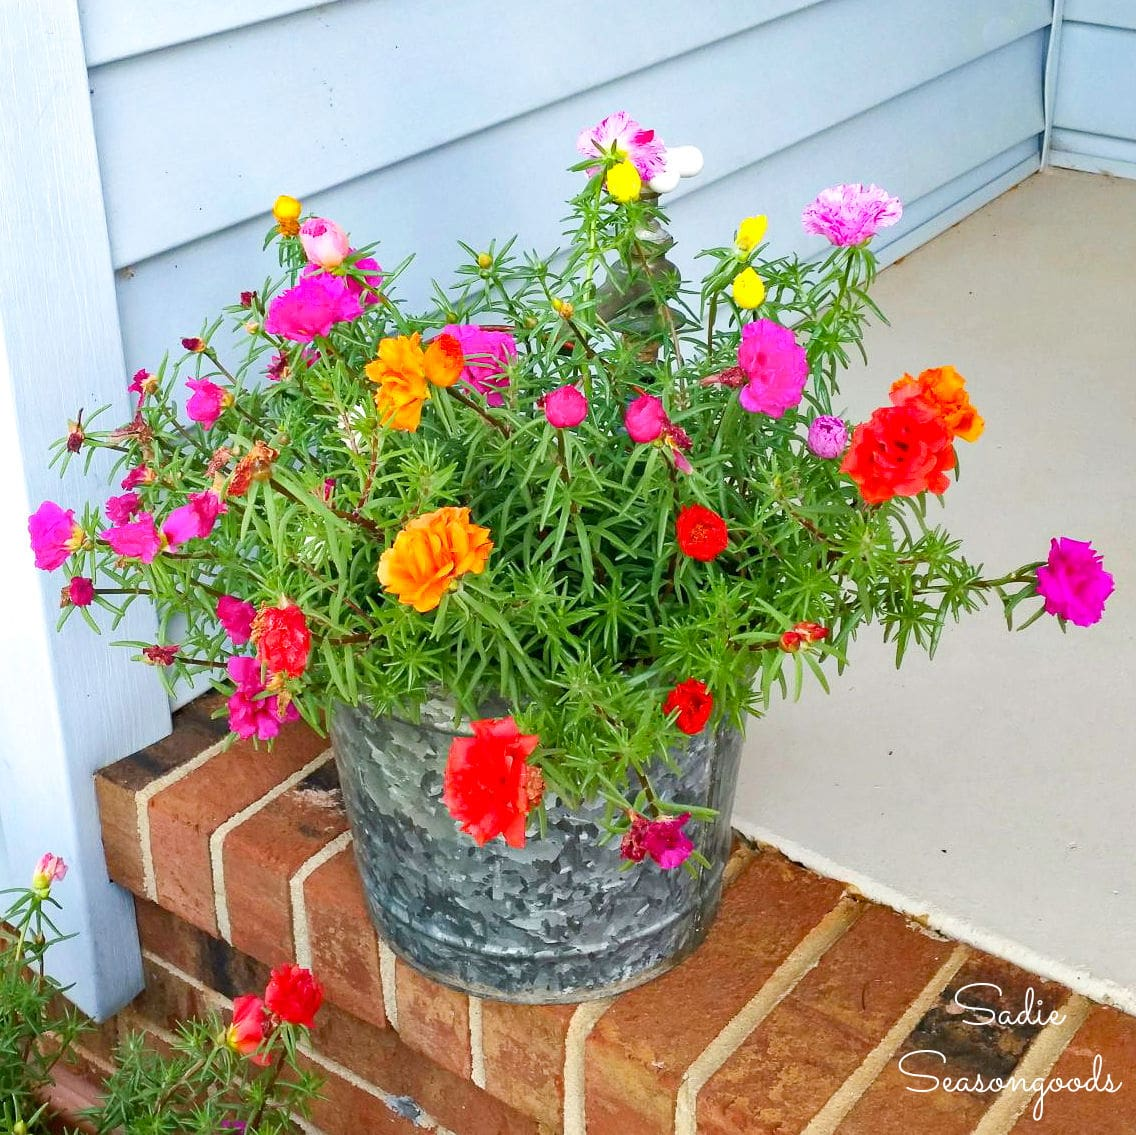 Galvanized Bucket Planter with a Decorative Hose Bibb